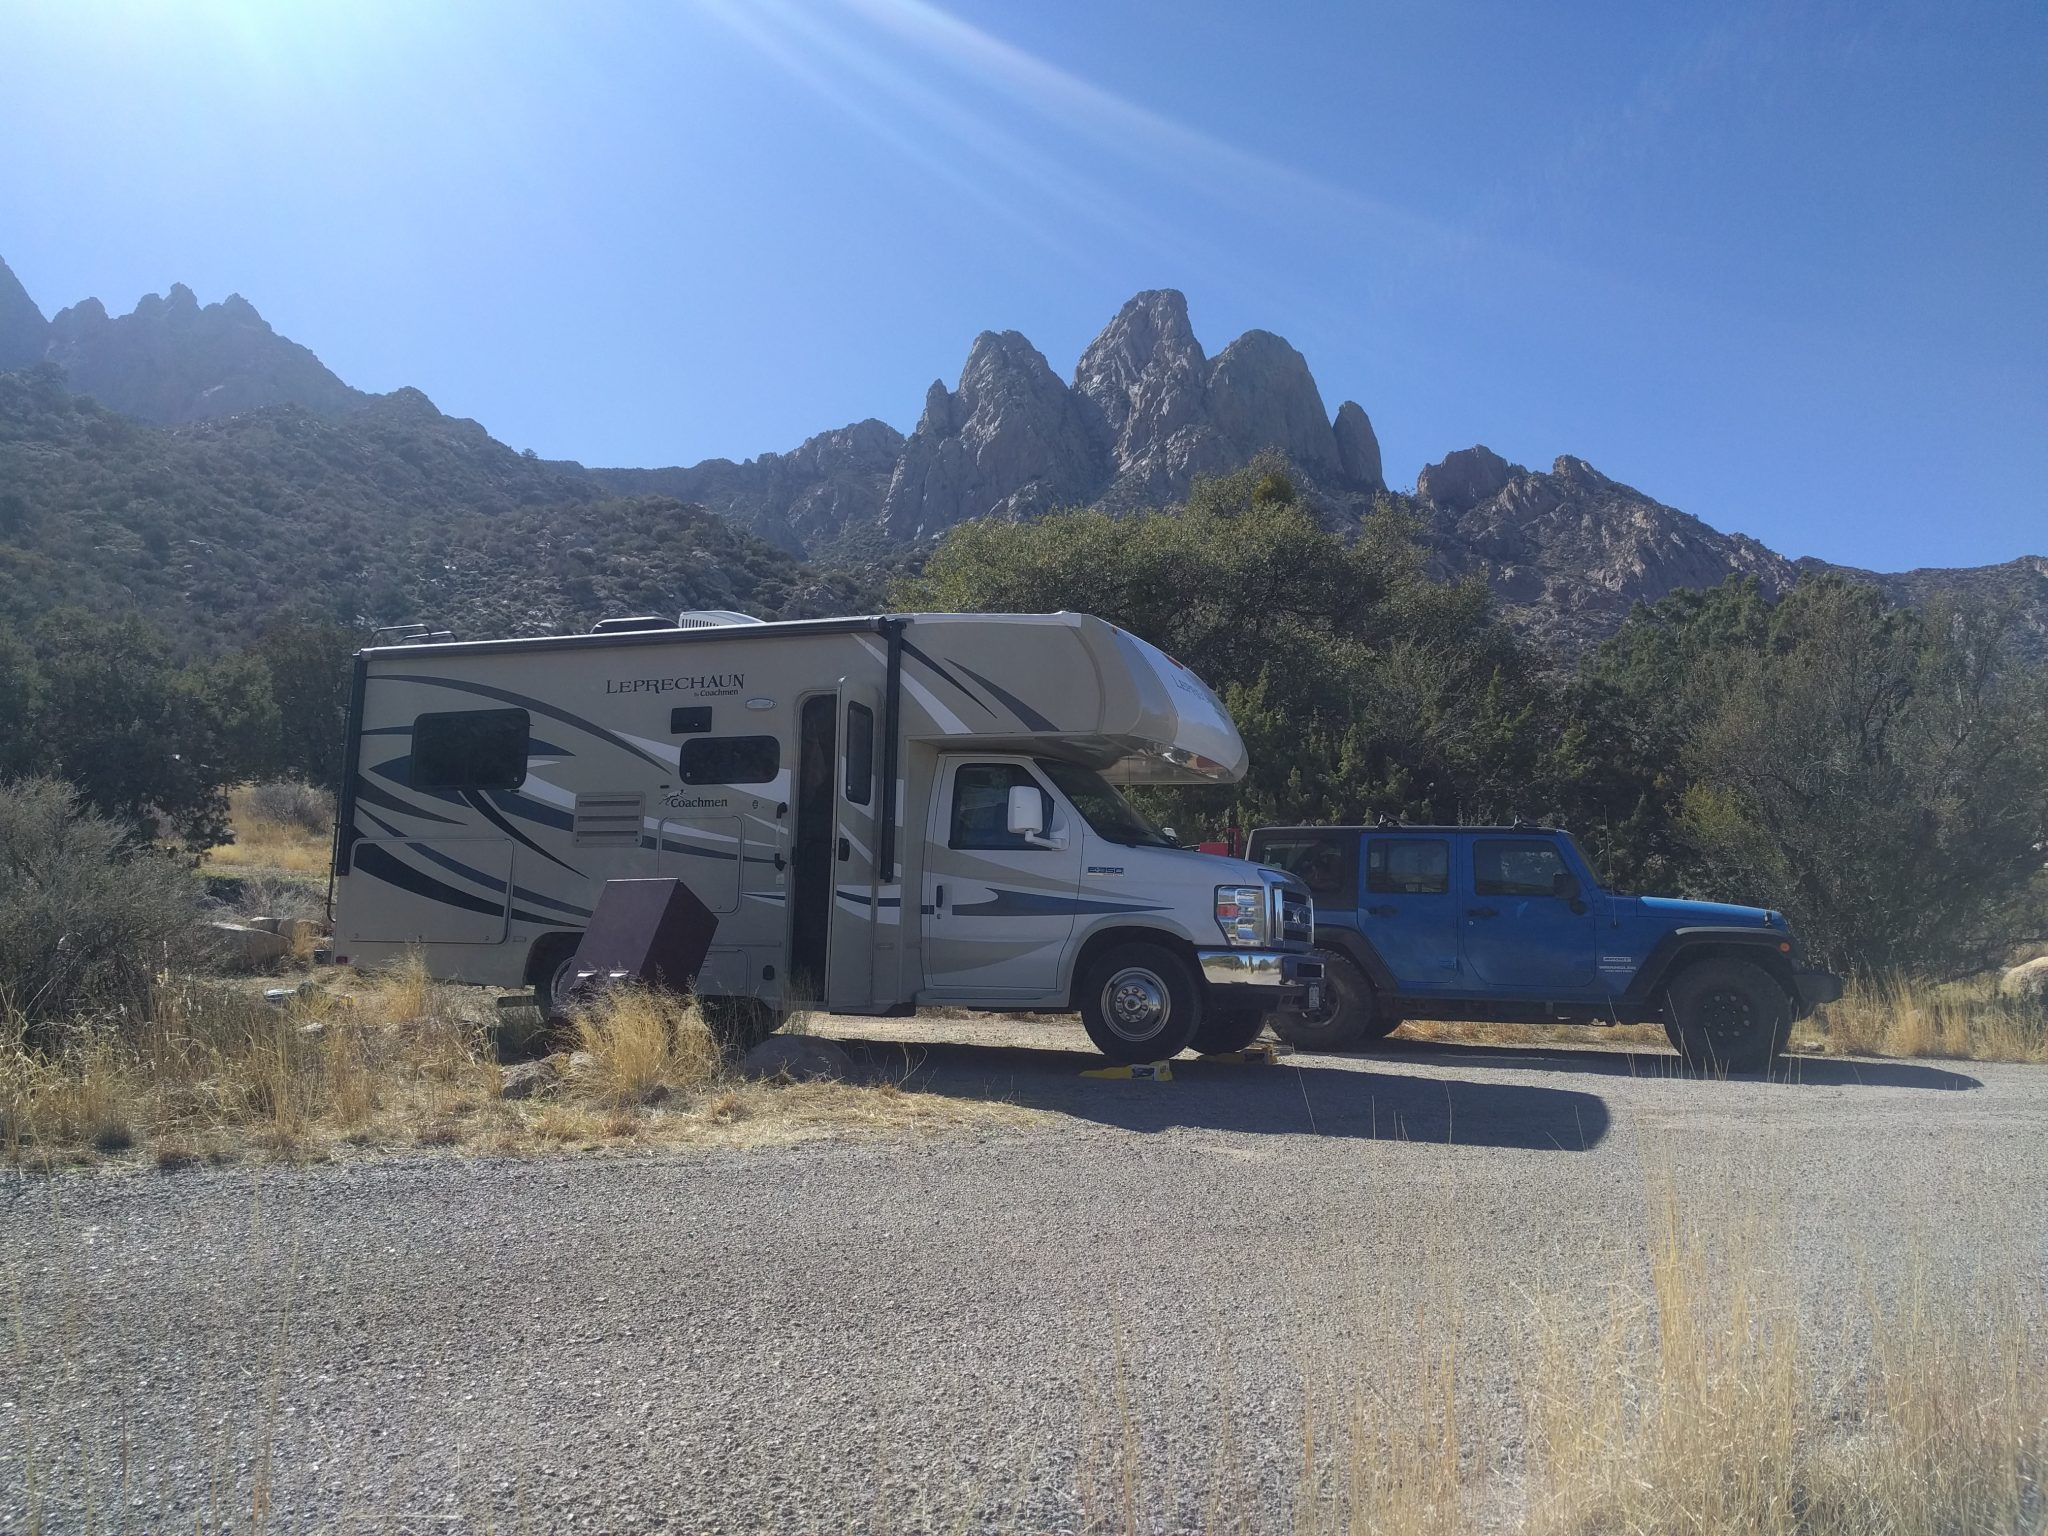 Alamogordo to Deming – By way of Aguirre Springs